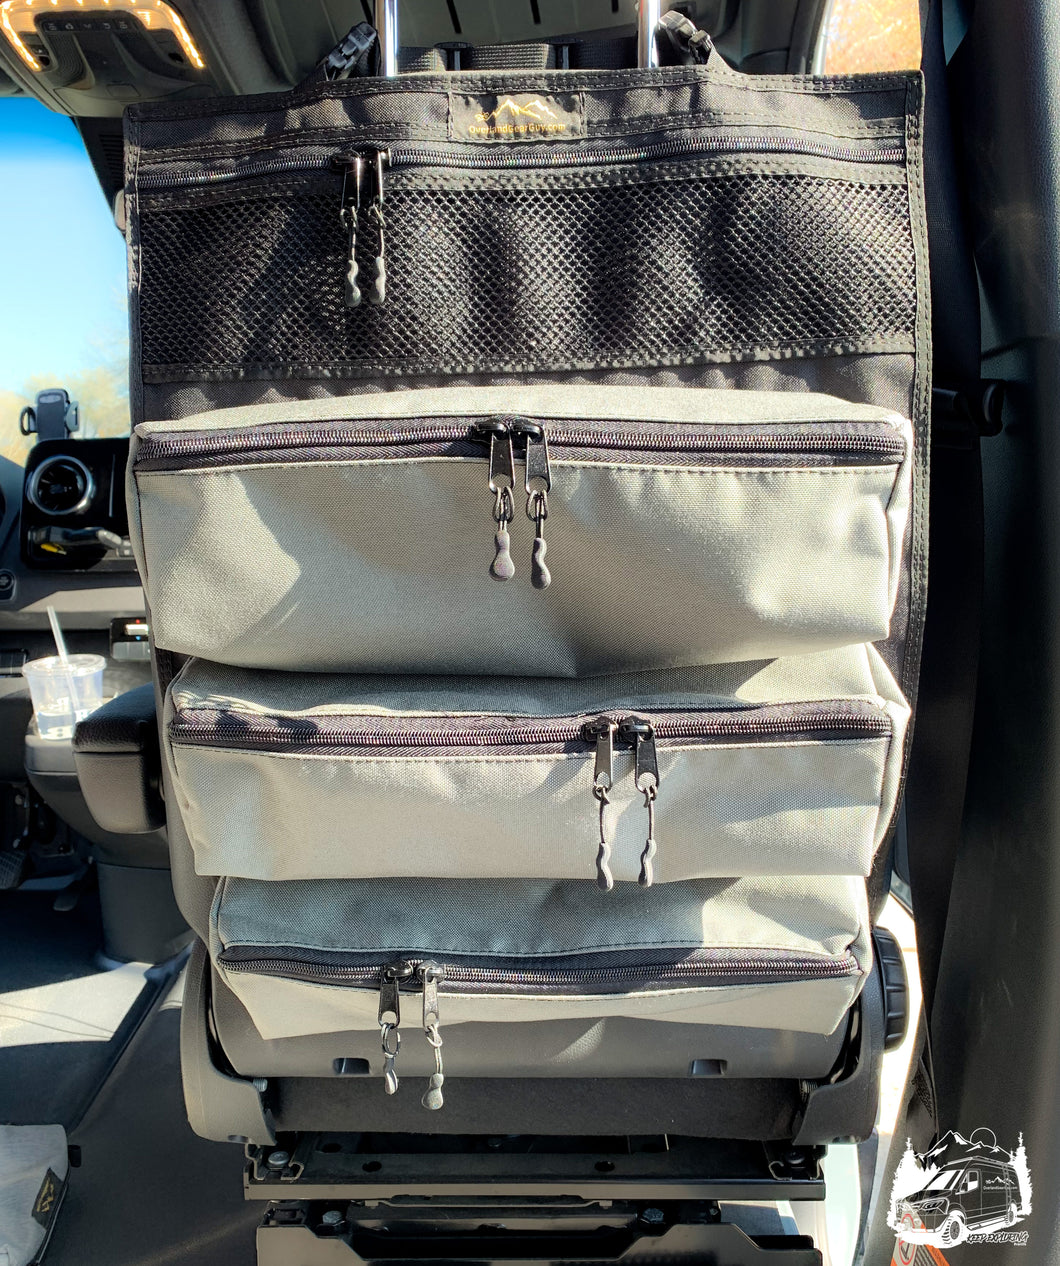 Poplar Seat Organizer by Overland Gear Guy - custom setback organizer and vehicle organization